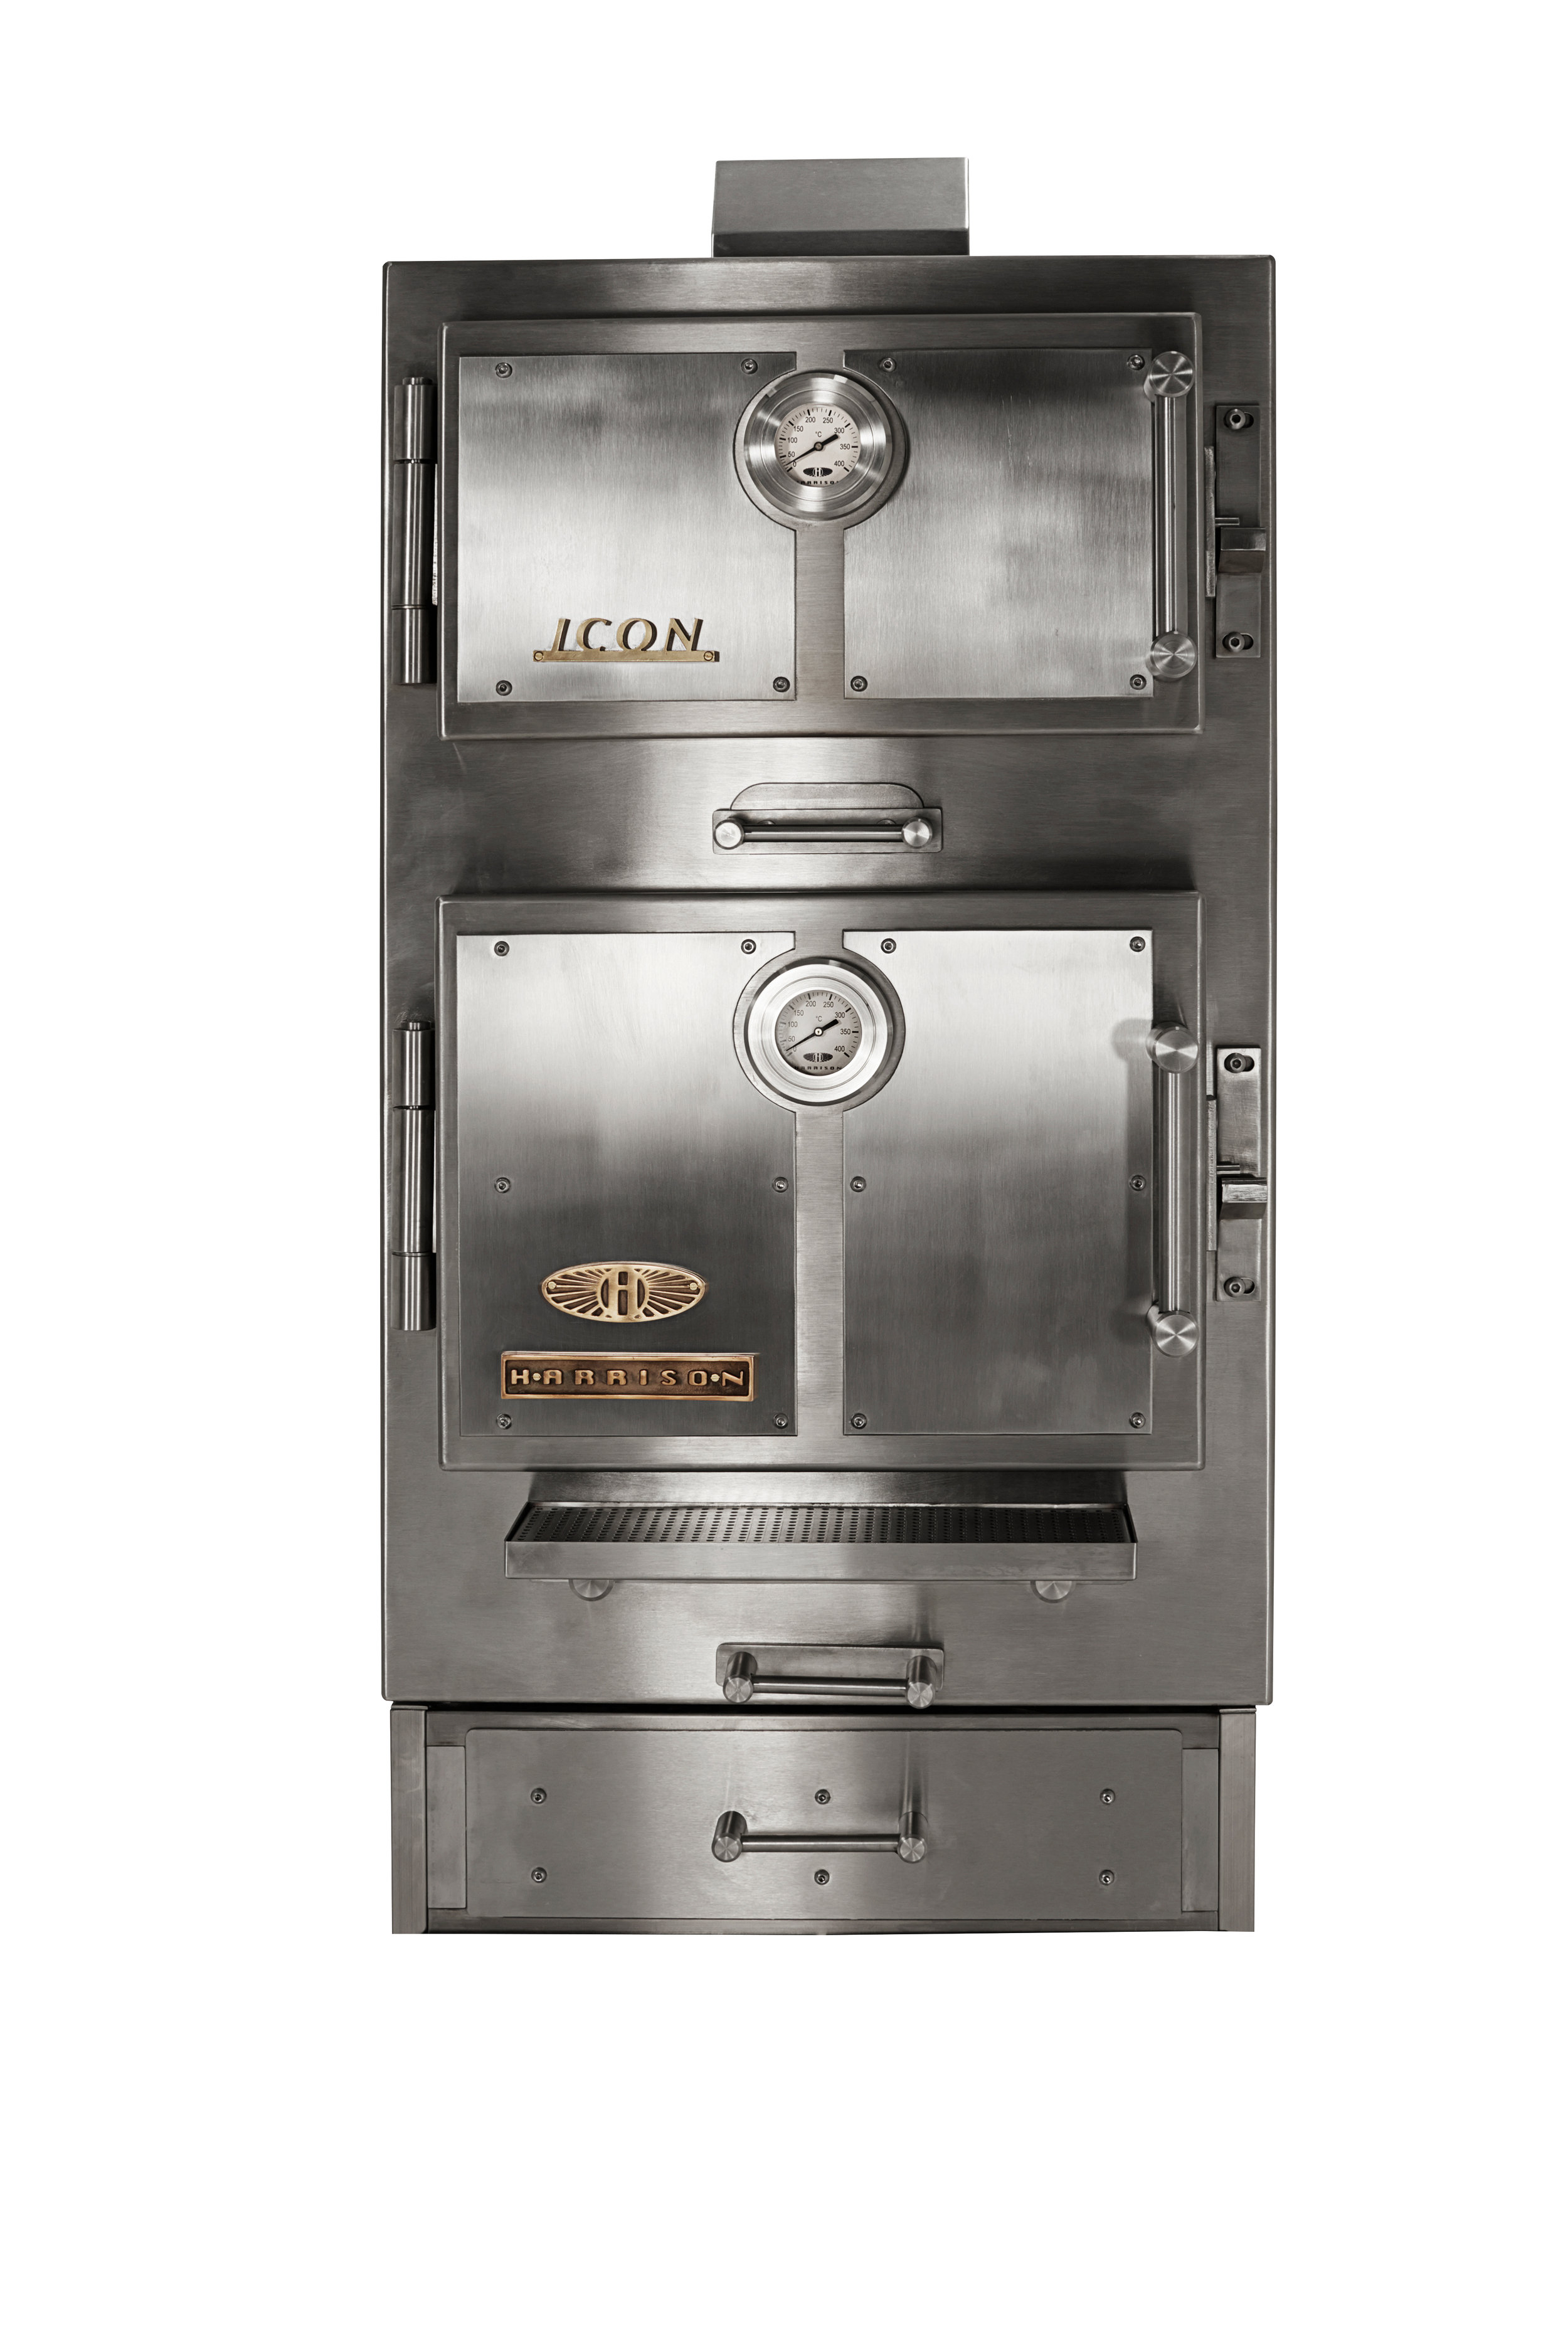 The Harrison Icon Charcoal Oven